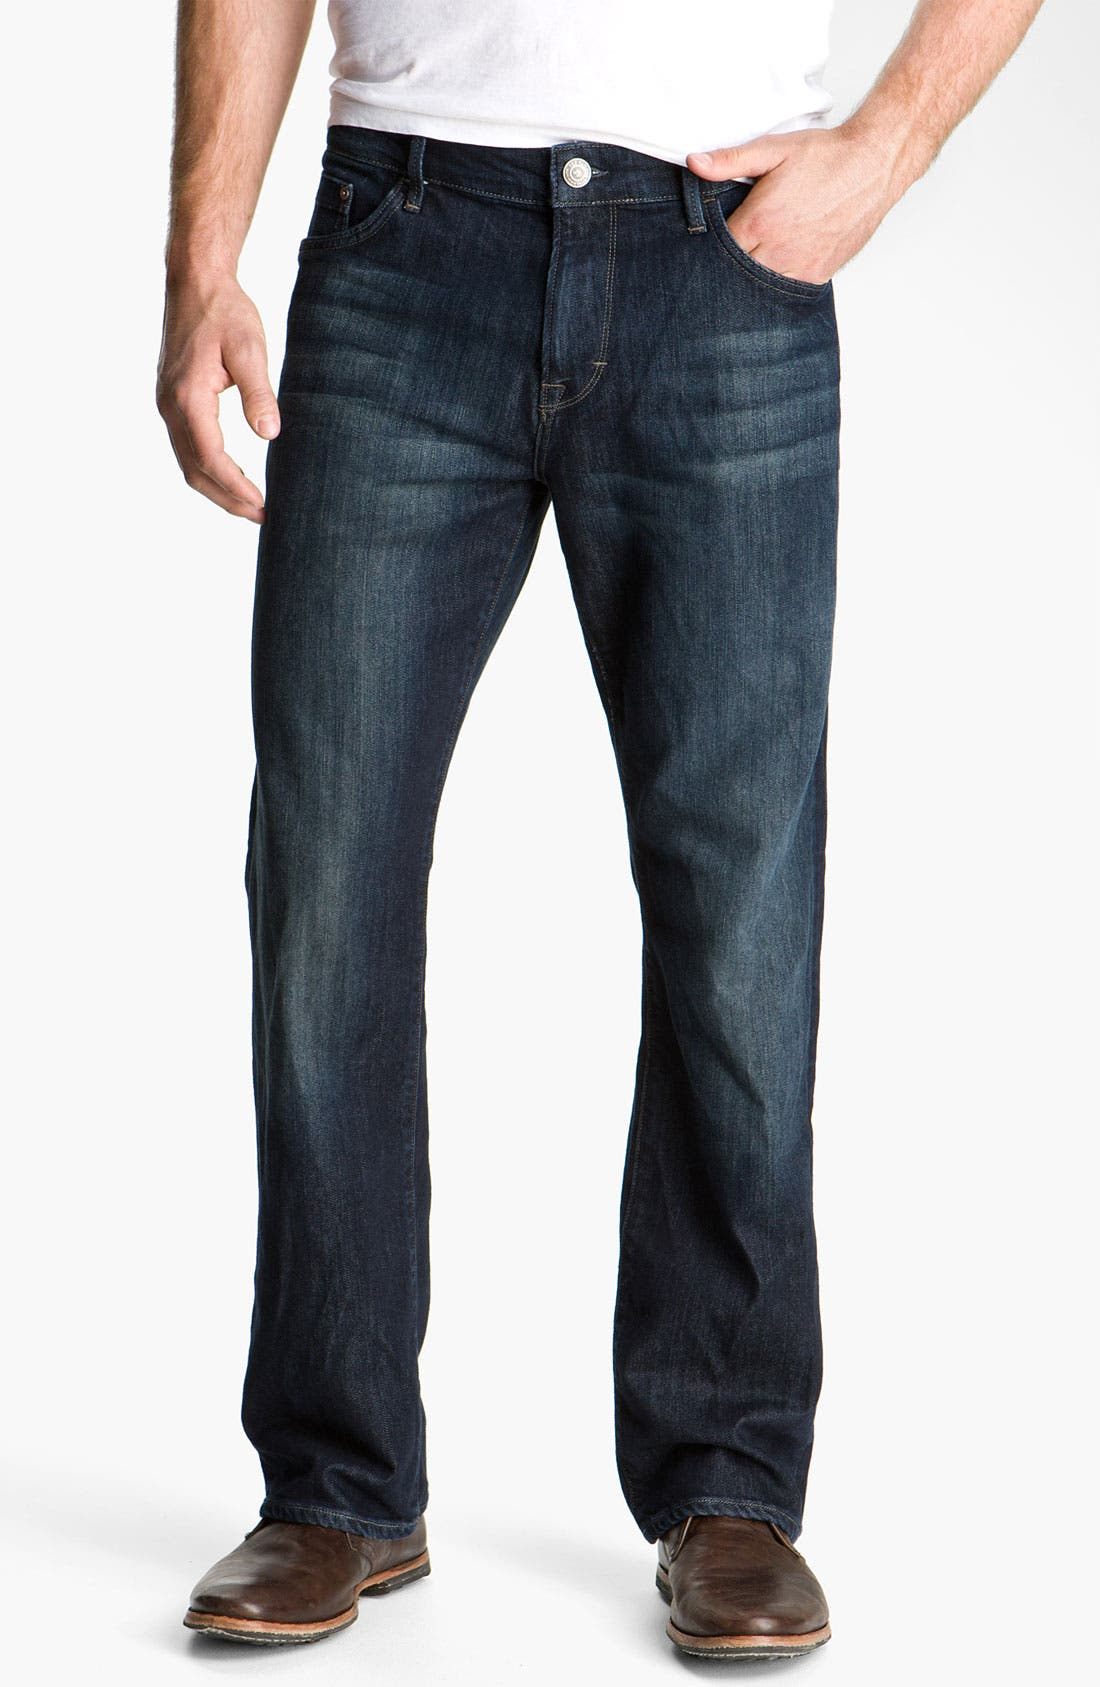 MAVI JEANS 'Matt' Relaxed Fit Jeans, Main, color, DEEP STANFORD COMFORT